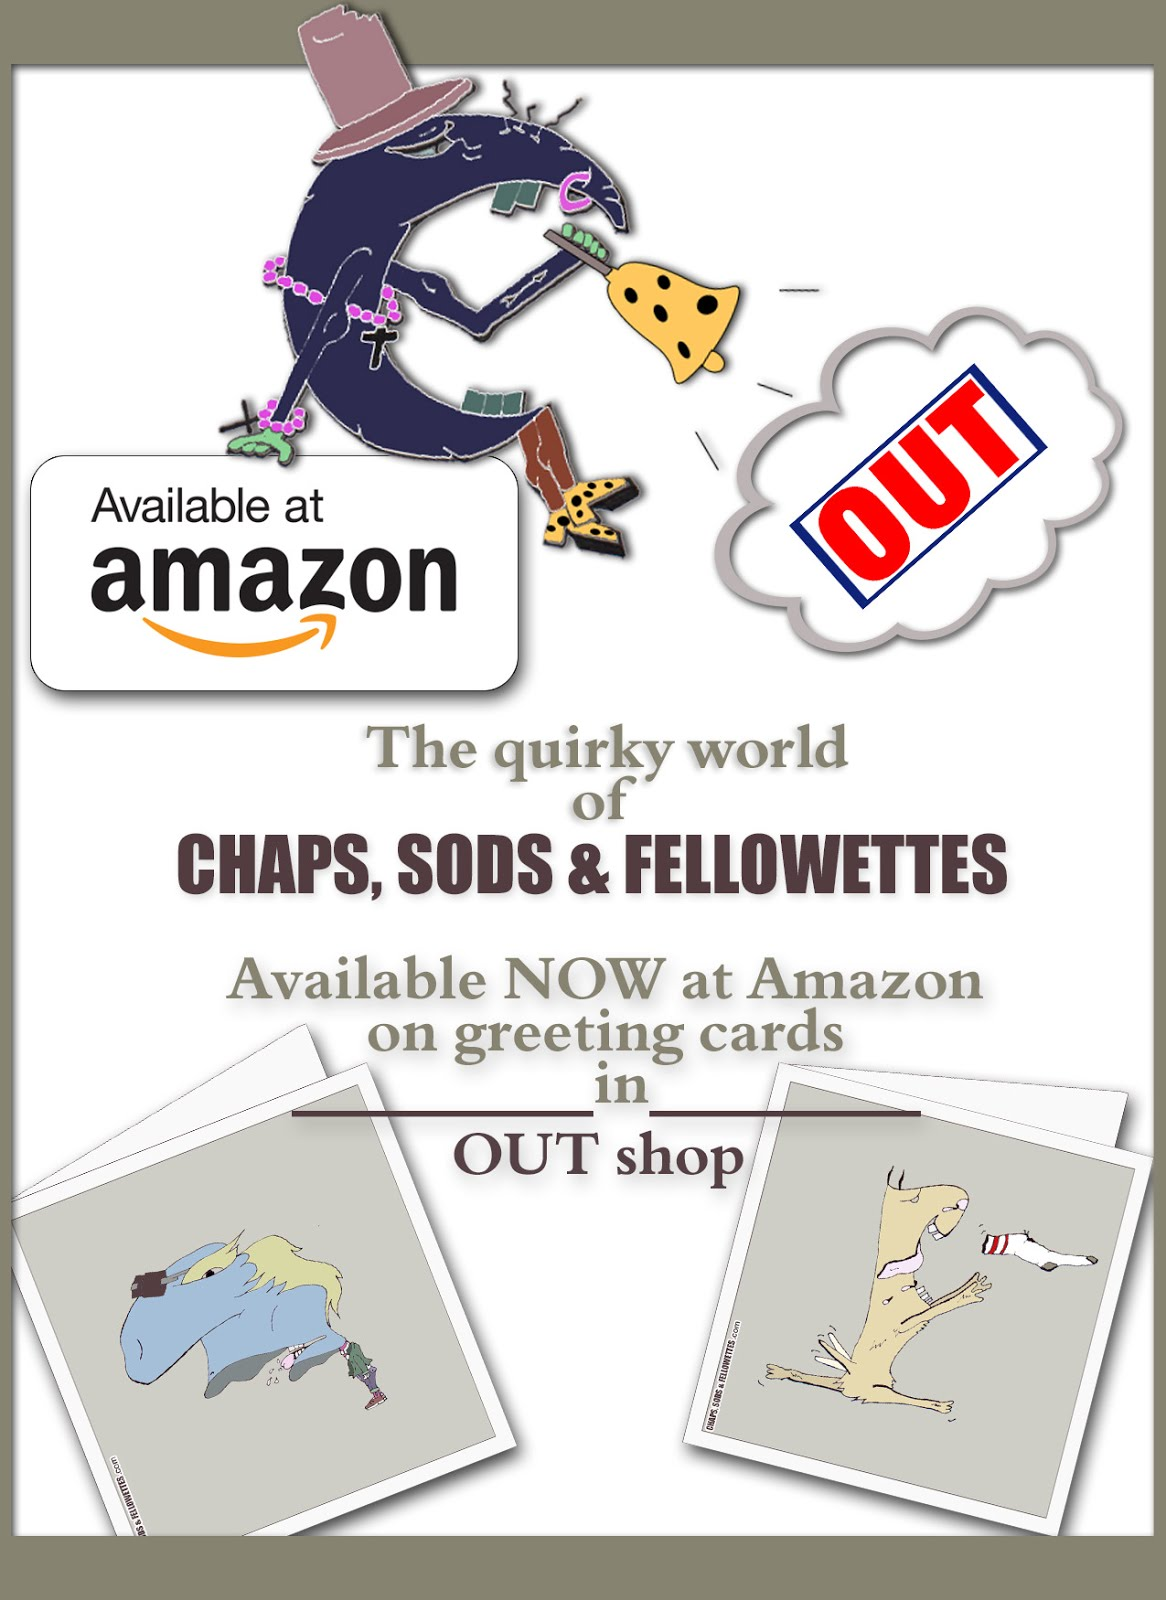 SHOP ONLINE AT AMAZON. Chaps, Sods and Fellowettes greeting cards.